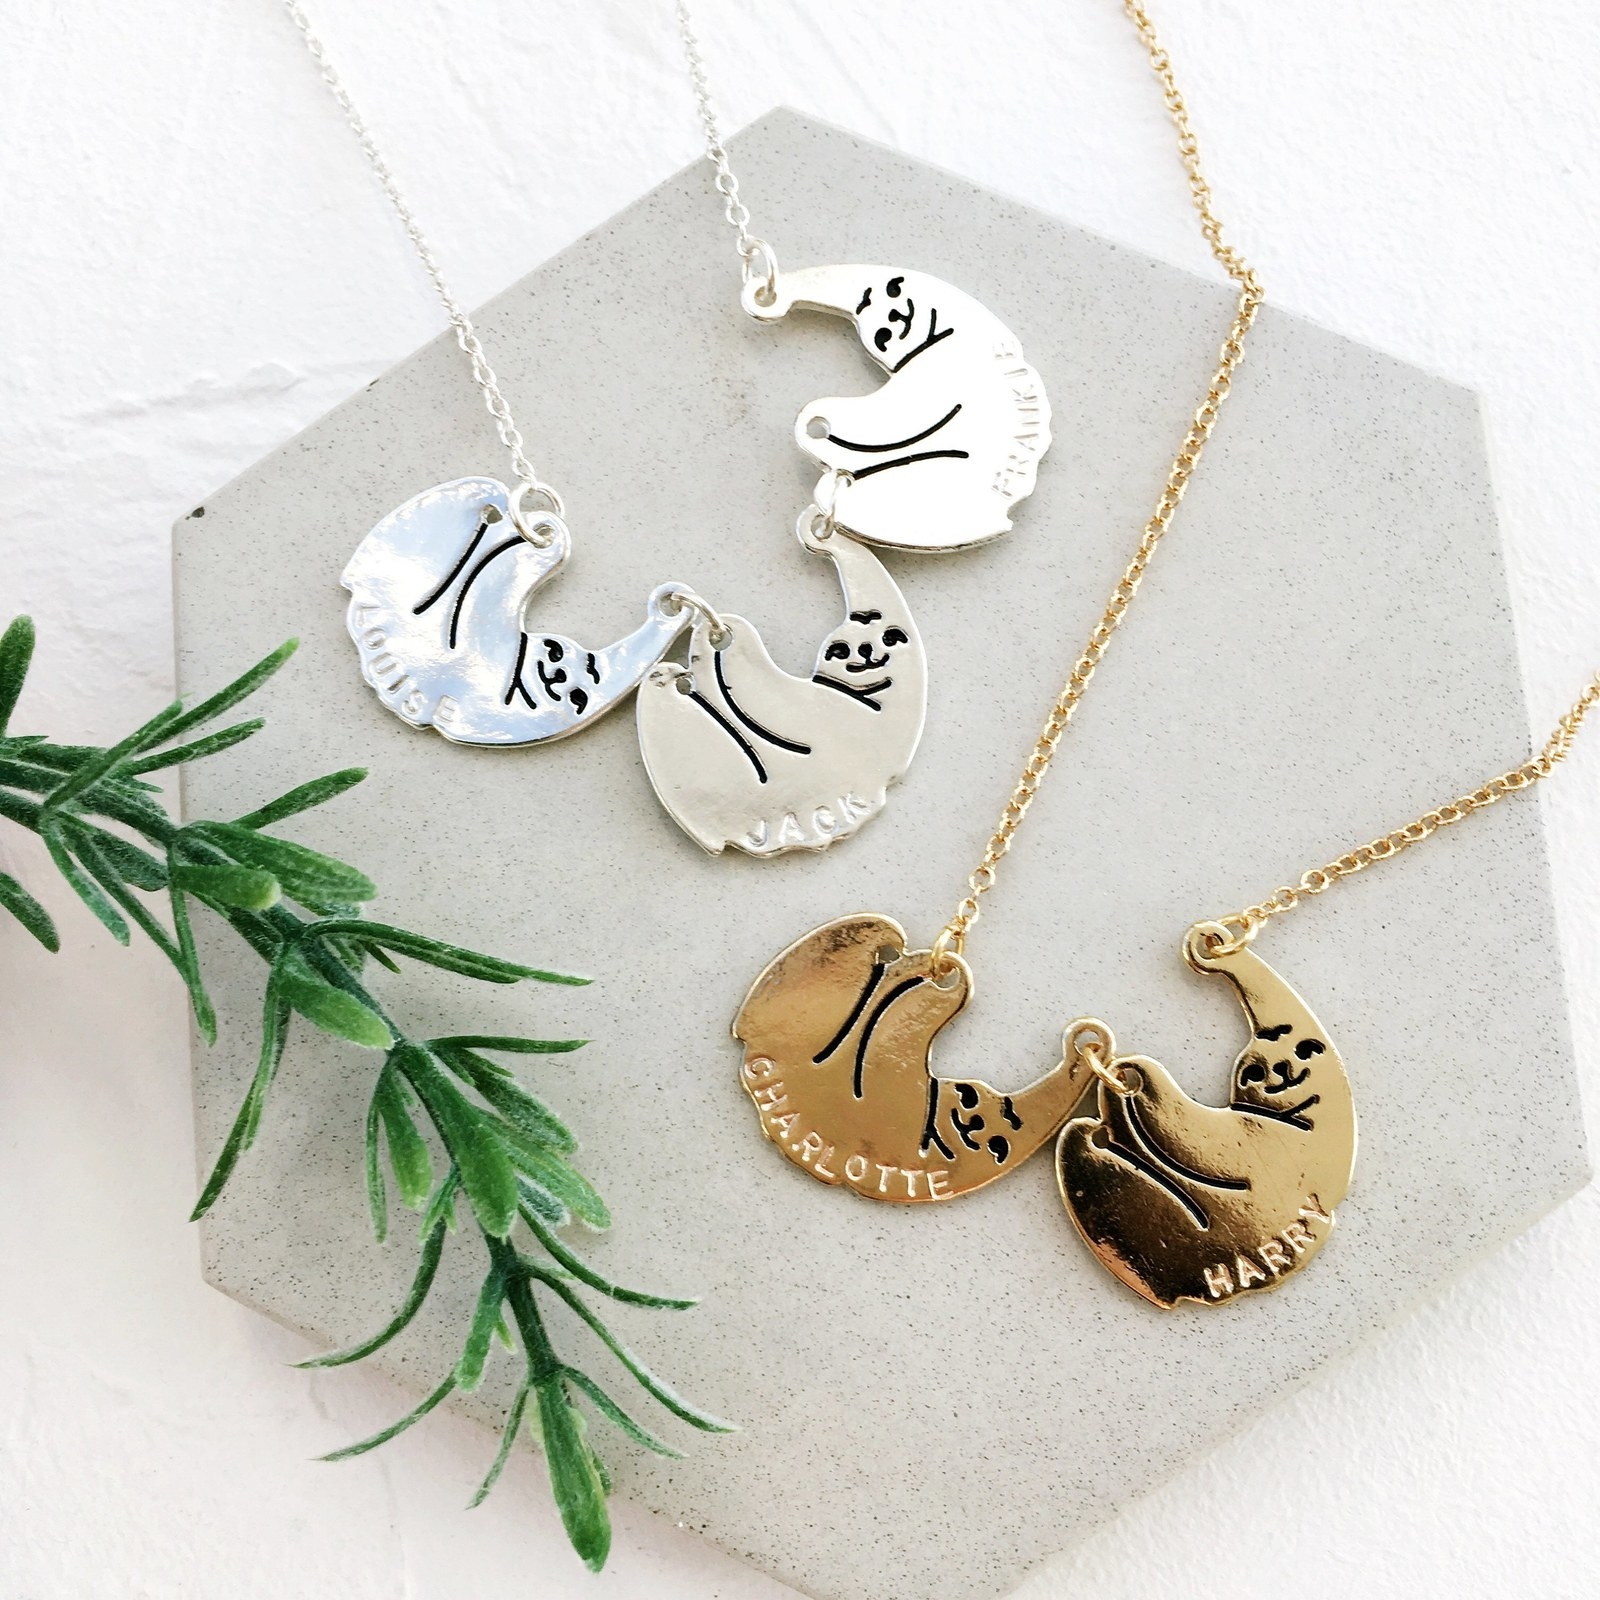 necklace with sloth charms that have engraved names